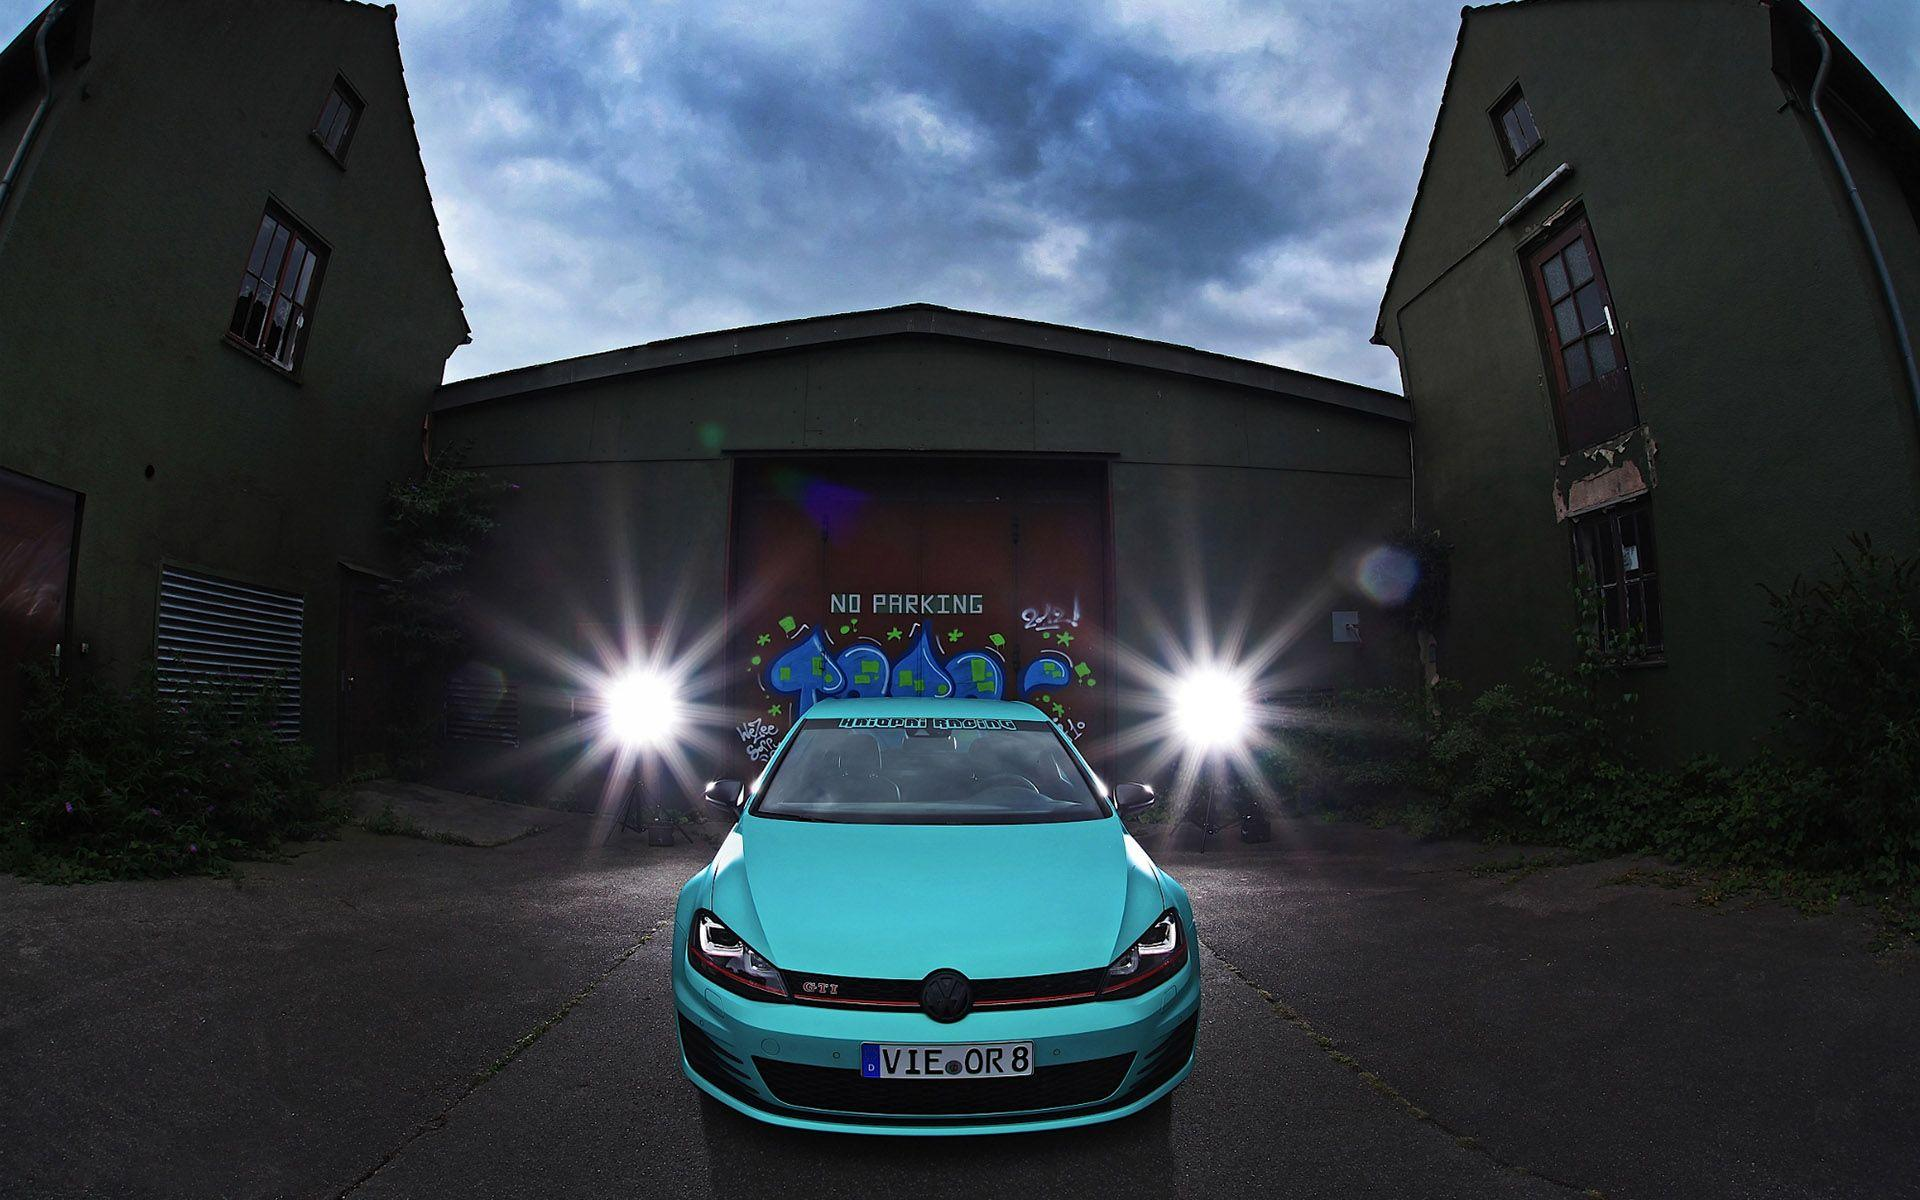 2015 Cam Shaft Volkswagen Golf GTI MK7 Wallpaper